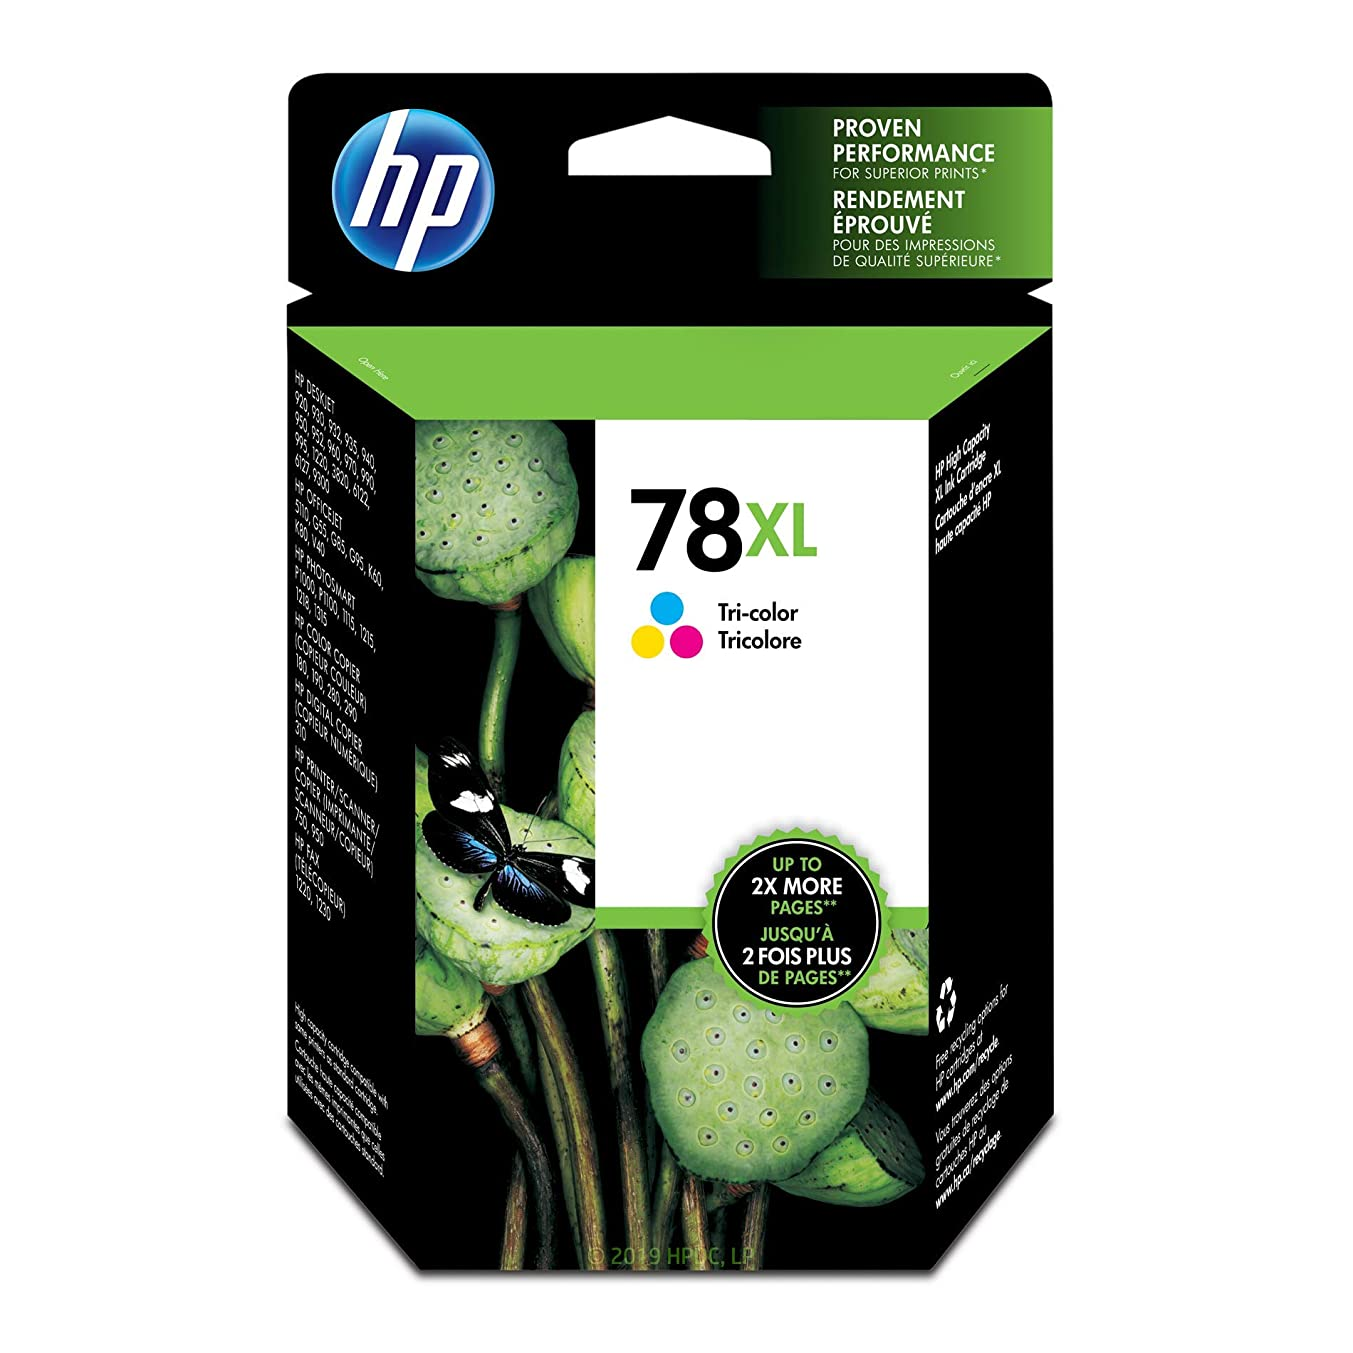 HP 78XL Tri-color Ink Cartridge (C6578AN) for HP Deskjet 3820 920 9300 930 932 940 955 960 980 HP Officejet g55 g85 k80 v40 HP PSC 750 950